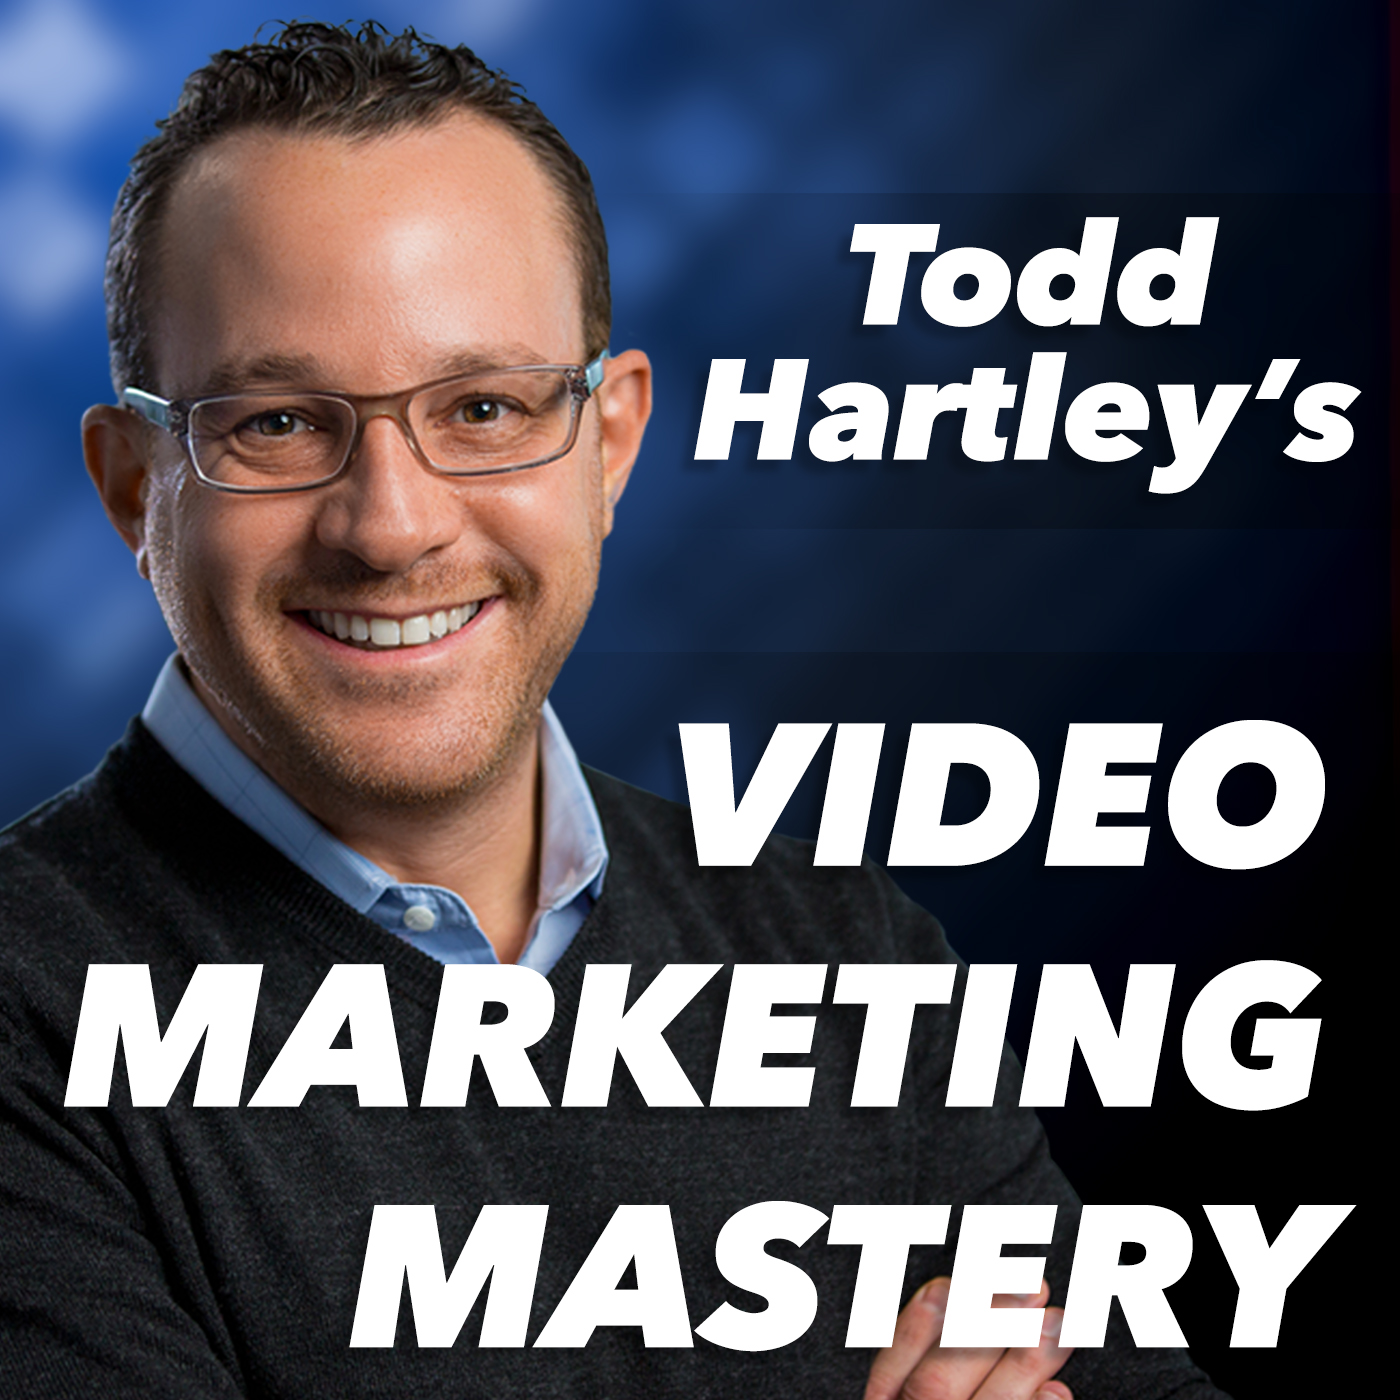 Video Marketing Mastery with Todd Hartley: Online Video Strategy | YouTube Tips | Video Production